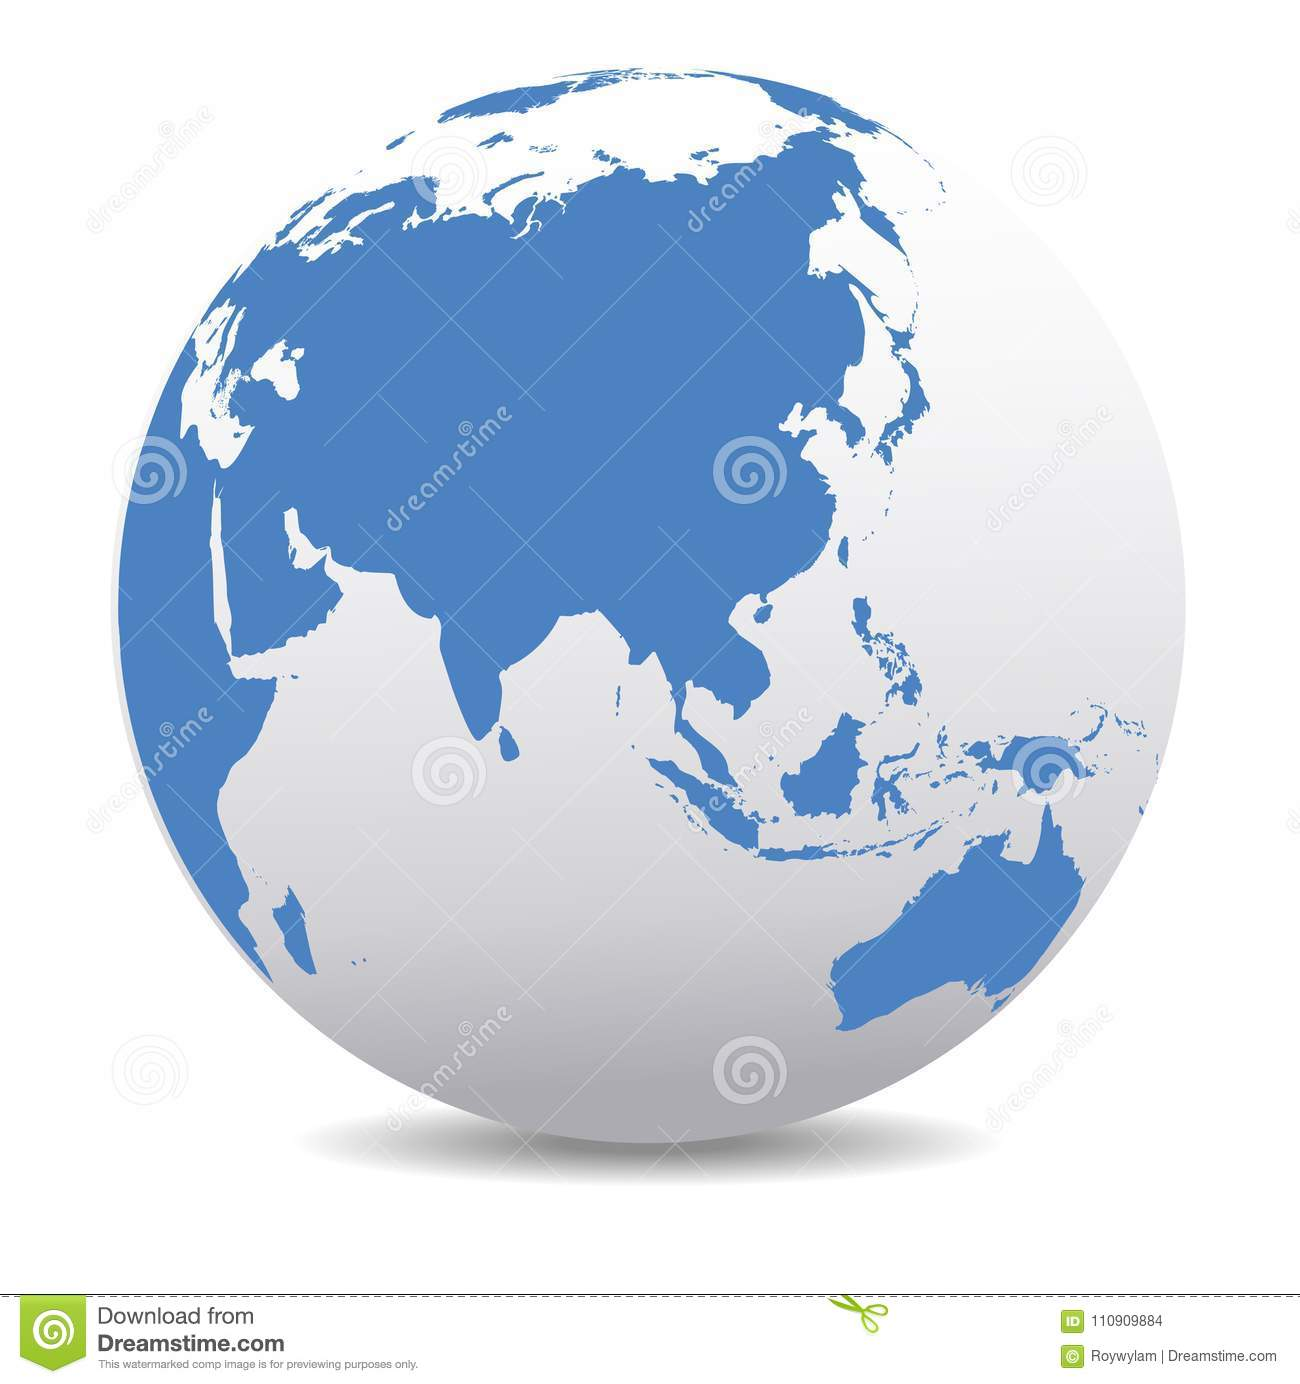 Global World Planet Earth China, Asia India Far East Stock Vector ...